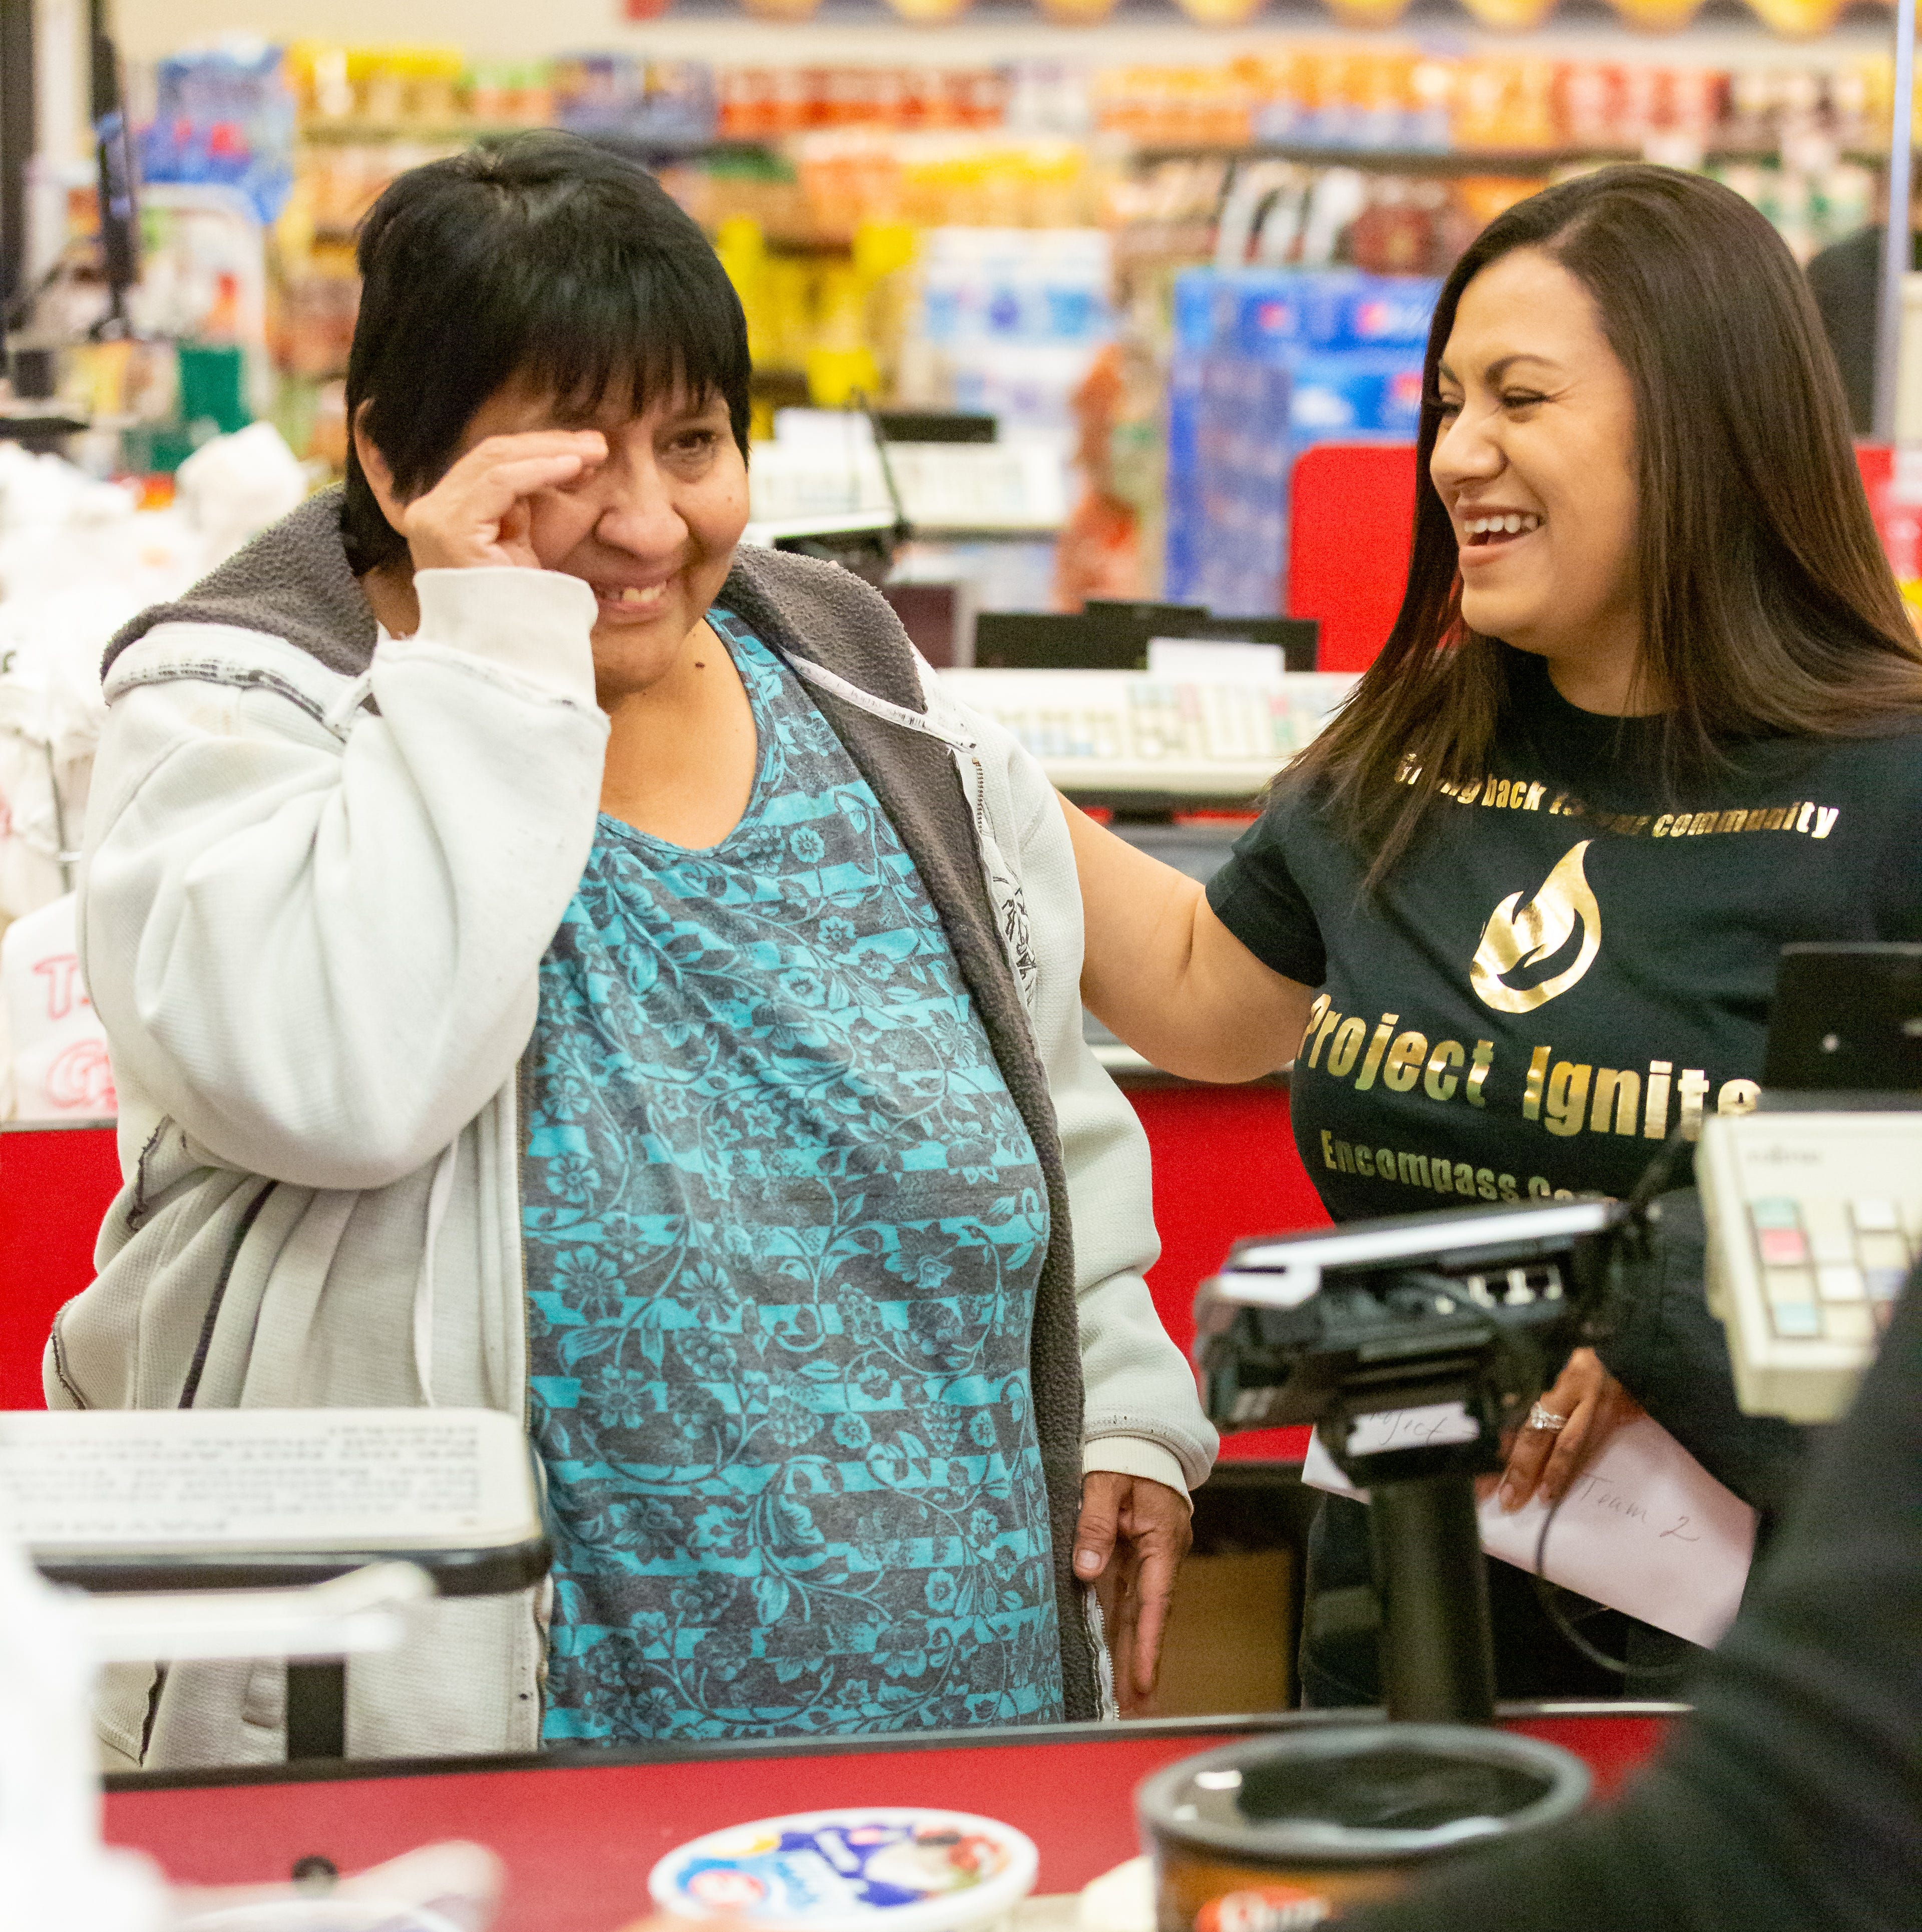 Encompass Home Health surprises shoppers by paying for their groceries